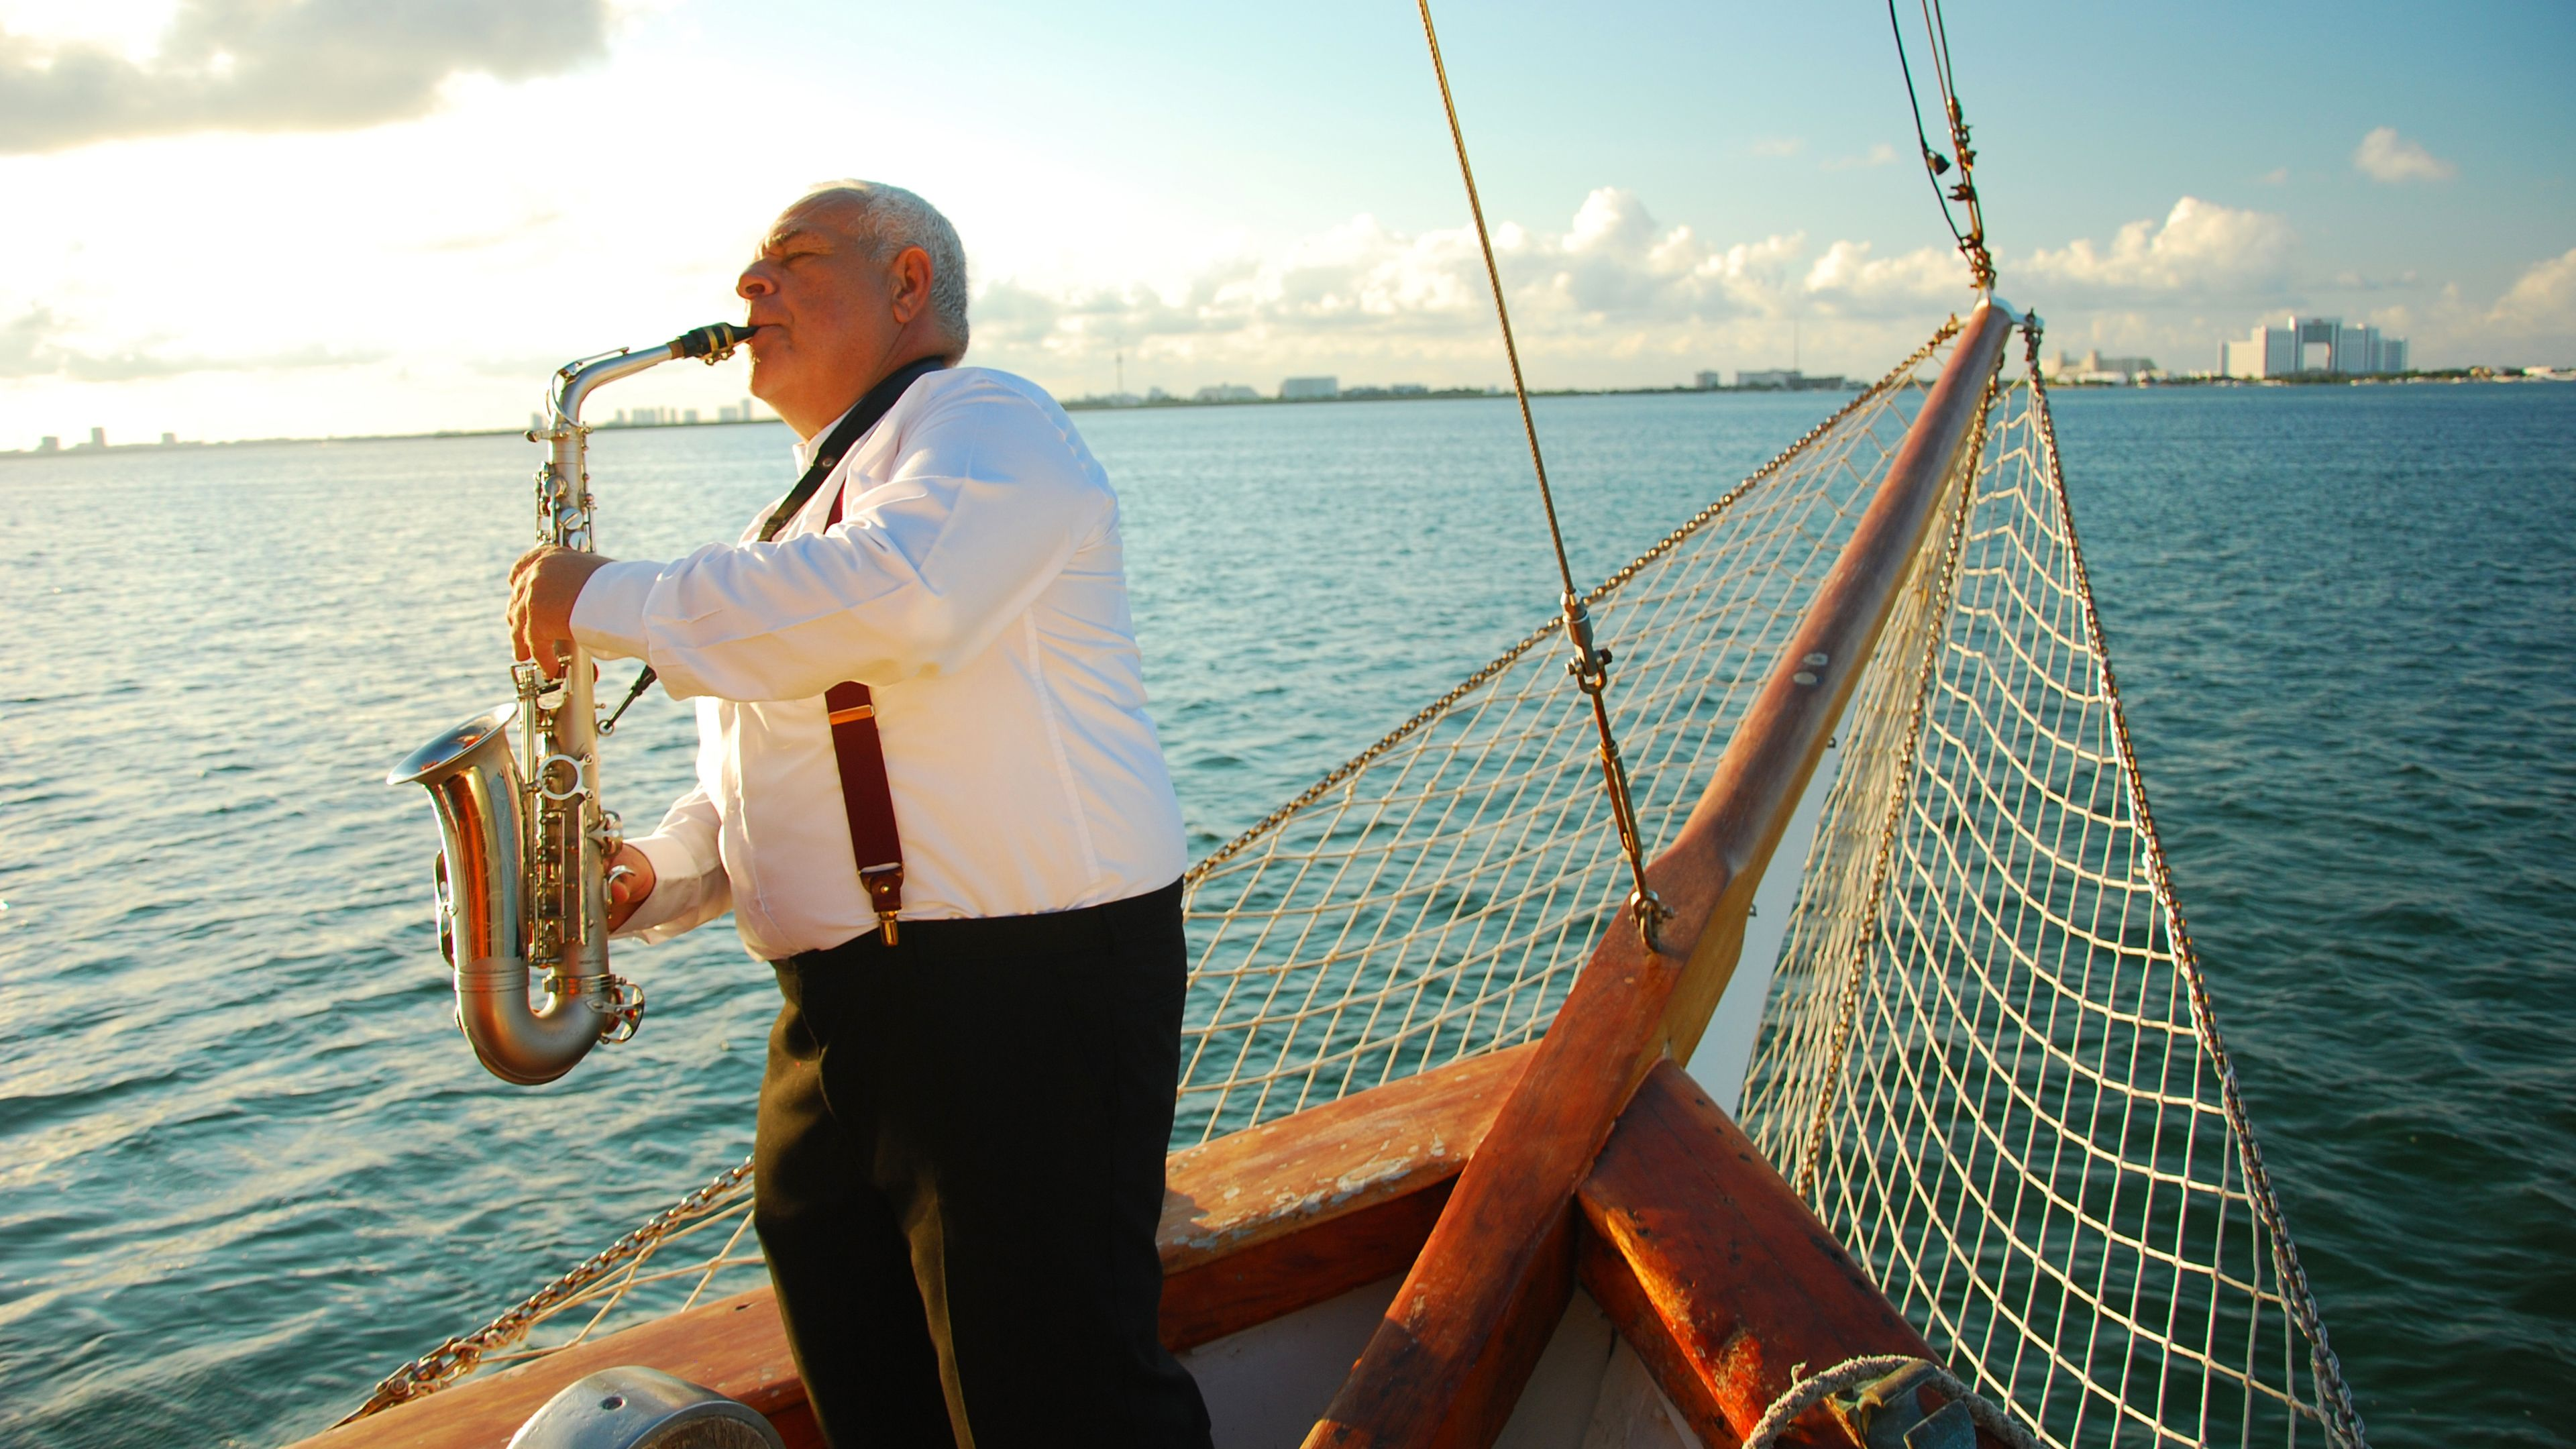 Old Man playing a saxophone on a boat in Mexico